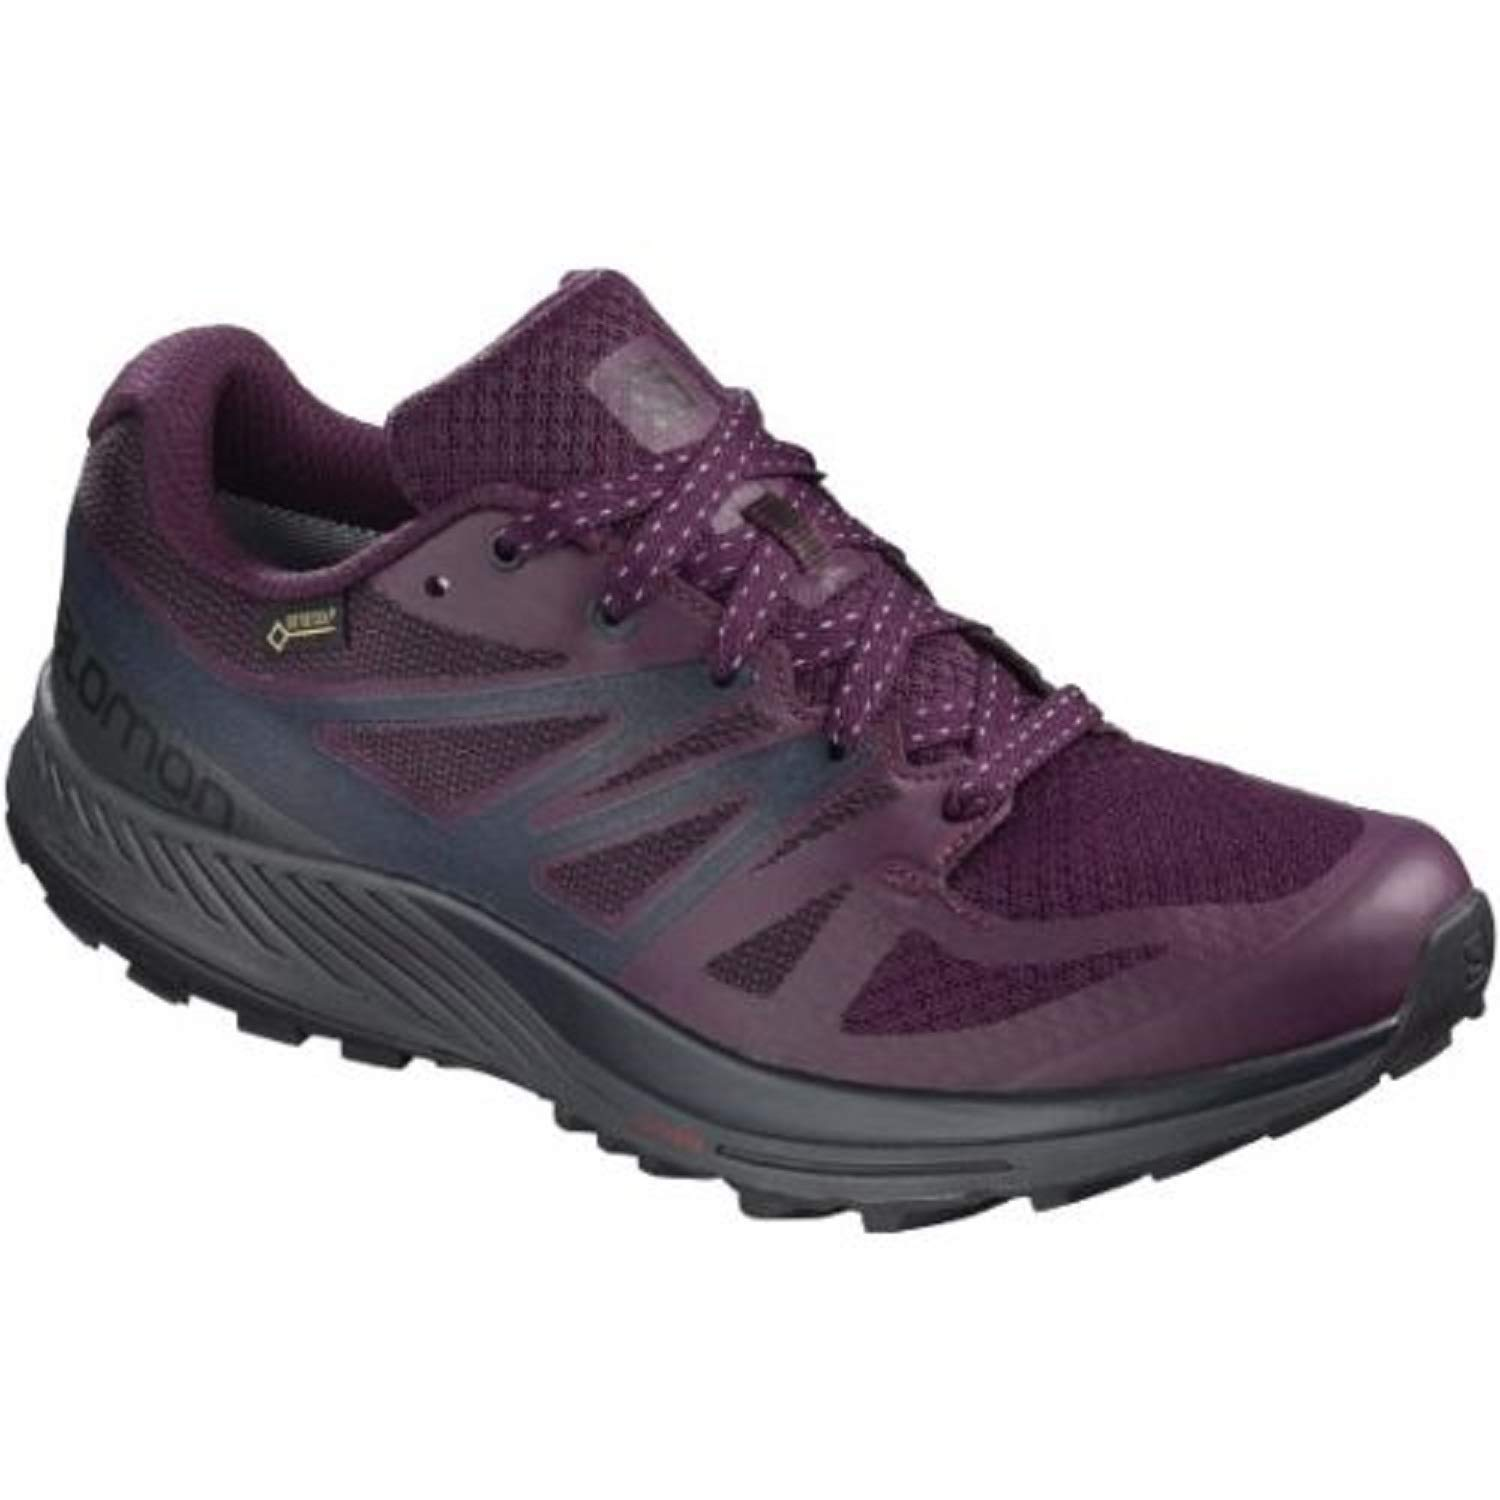 Salomon Sense GTX Escape GTX Sense W Damen Schuhe Trail 142f6b